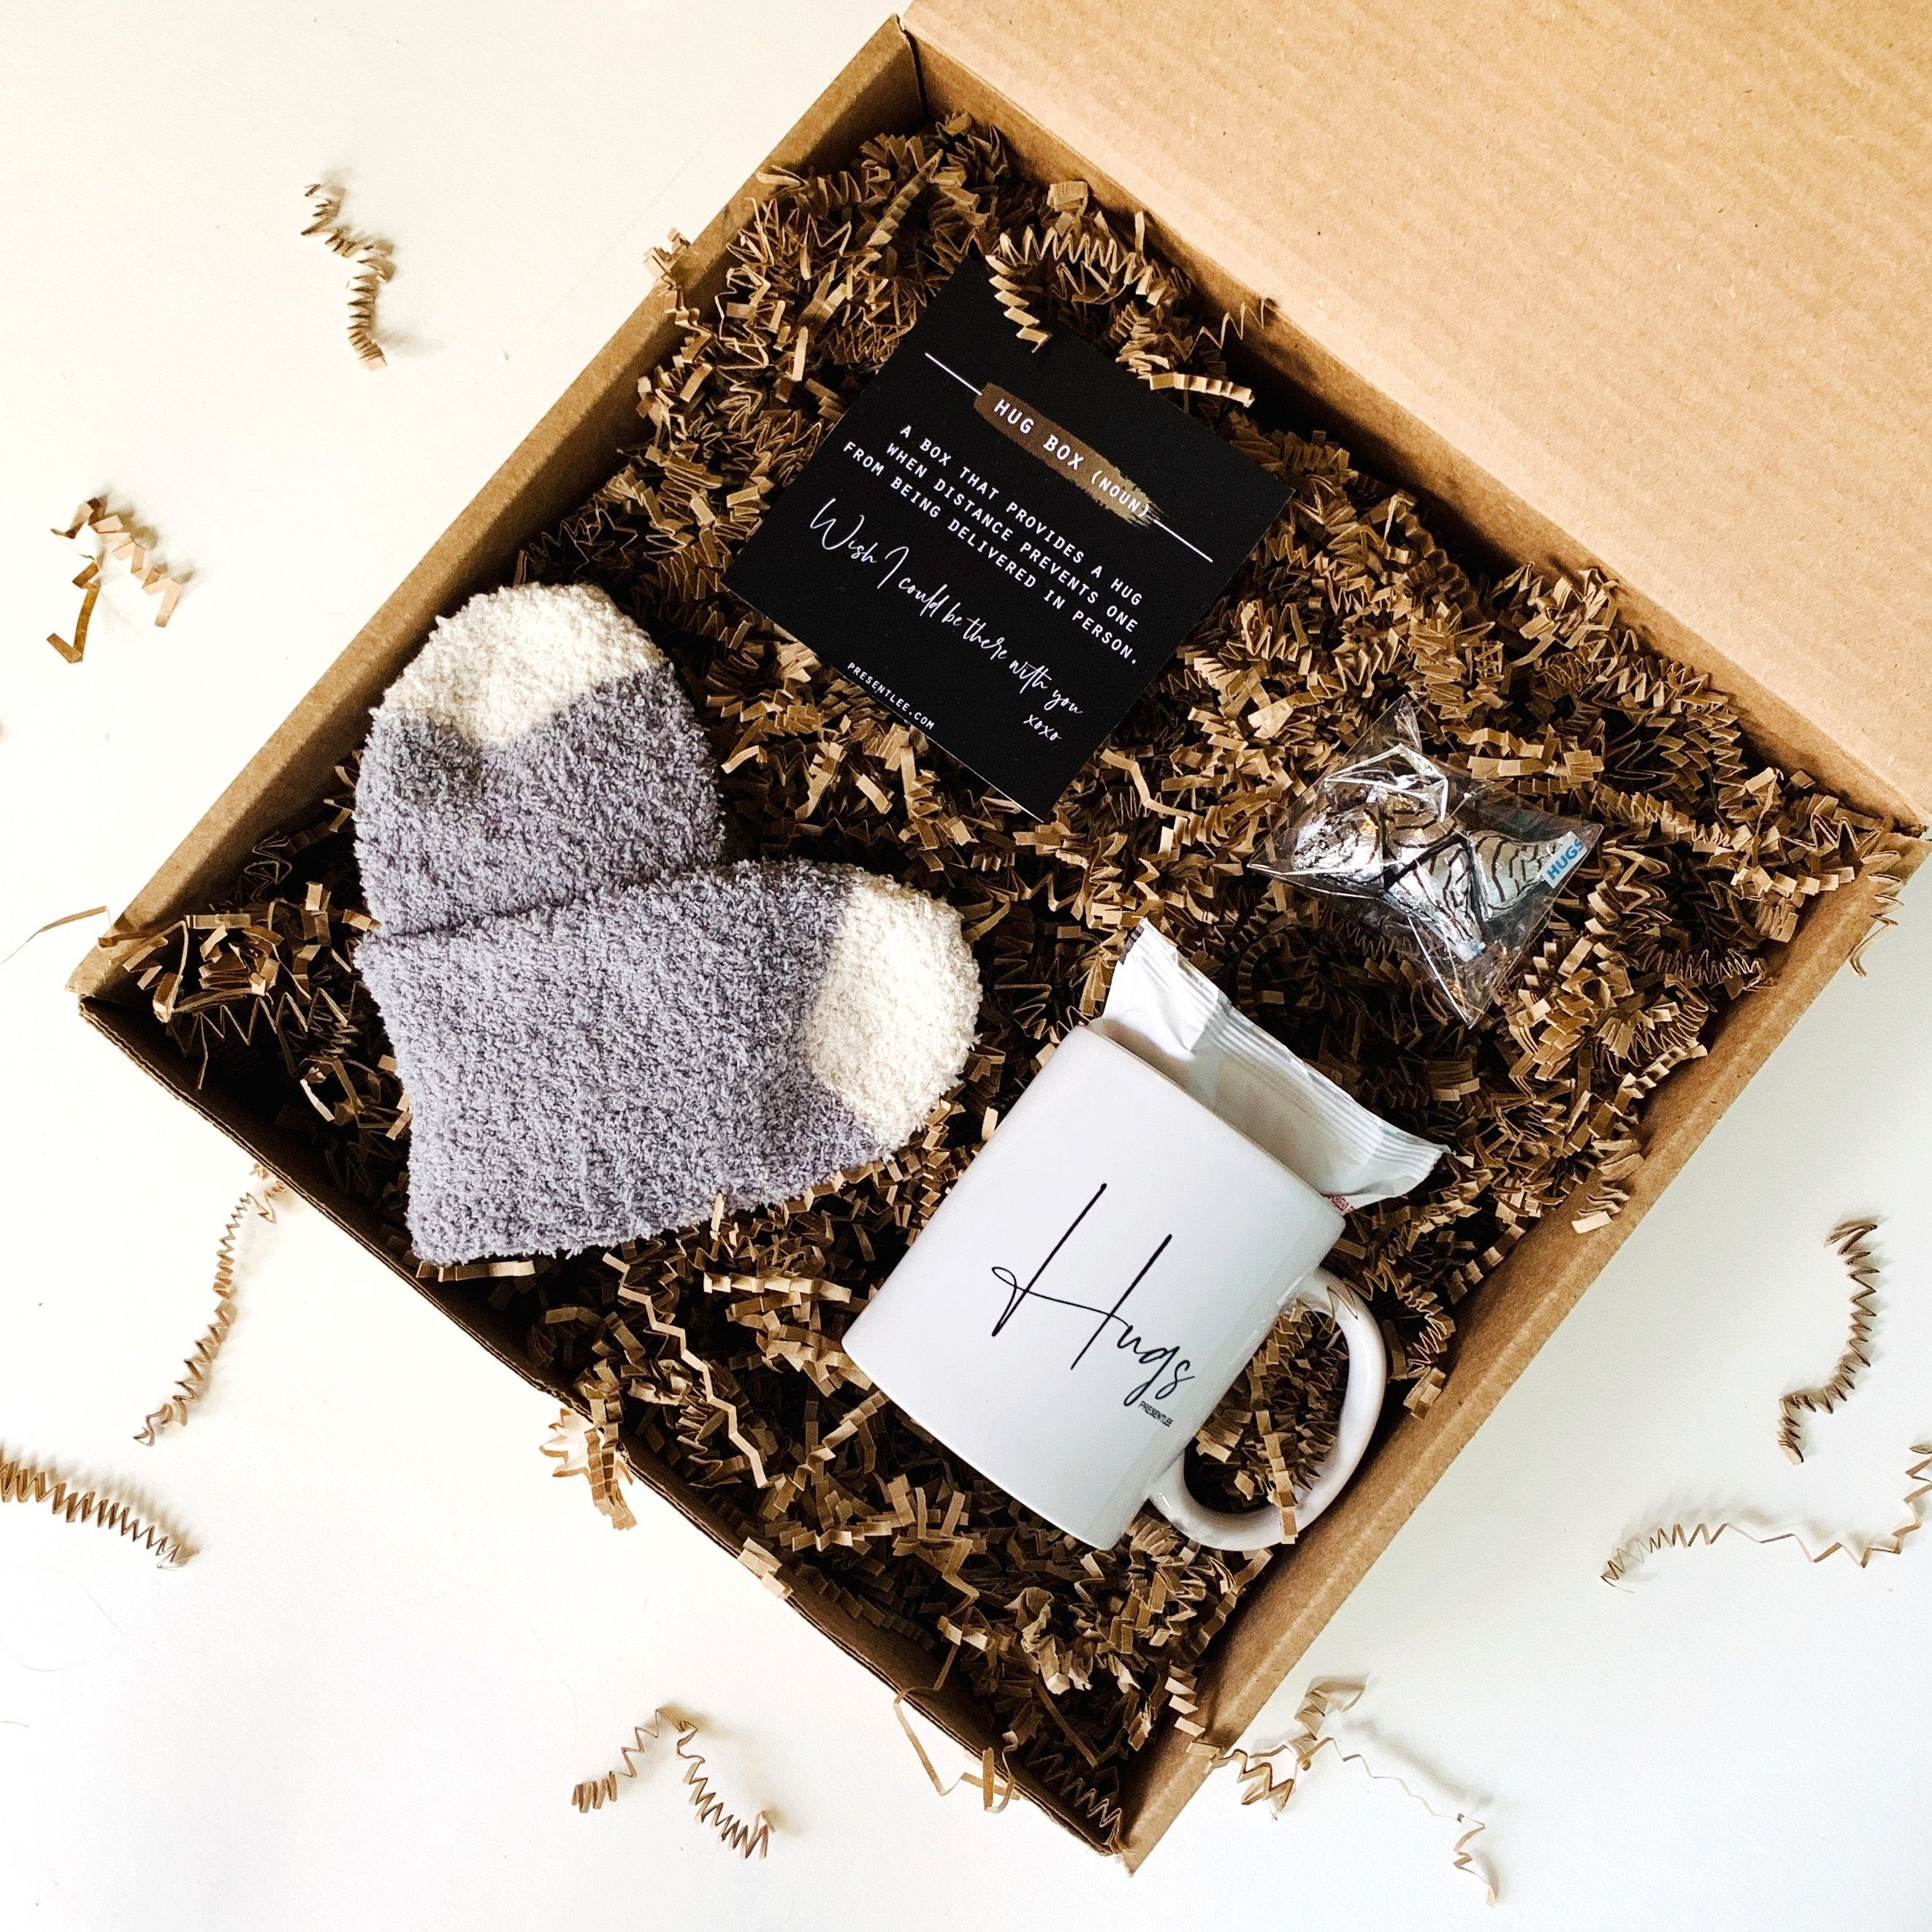 Sometimes a hug is worth more than a thousand words. It helps the other person know beyond a doubt that they matter. This box is the perfect gift for so many different situations. Each box includes: A comfy pair of gray and white fuzzy socks A custom